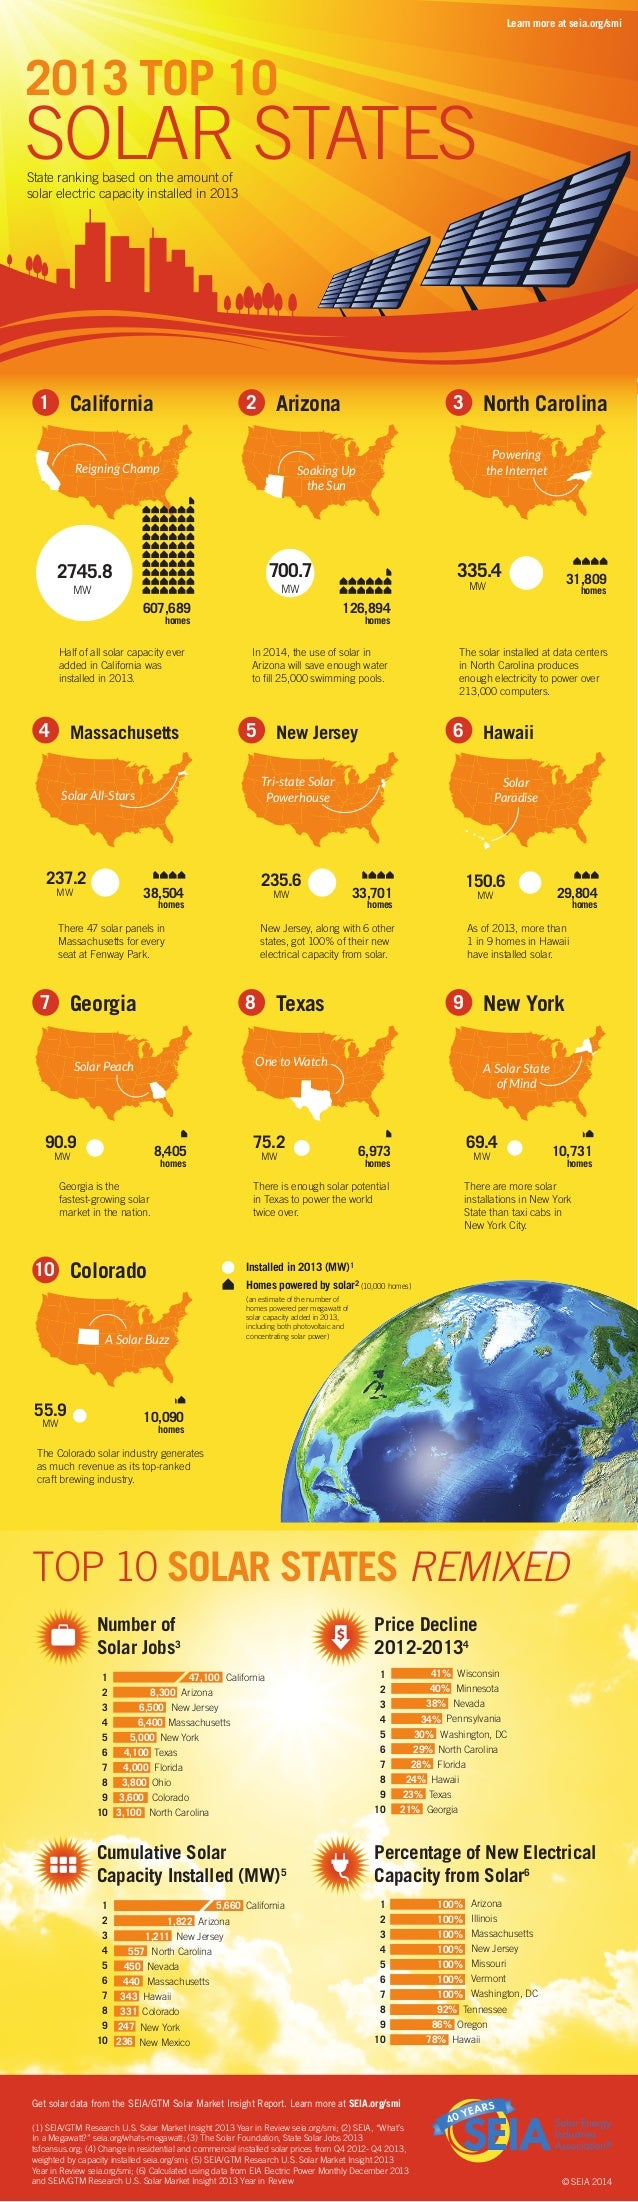 2013 TOP 10 SOLAR STATESState ranking based on the amount of solar electric capacity installed in 2013 Learn more at seia....